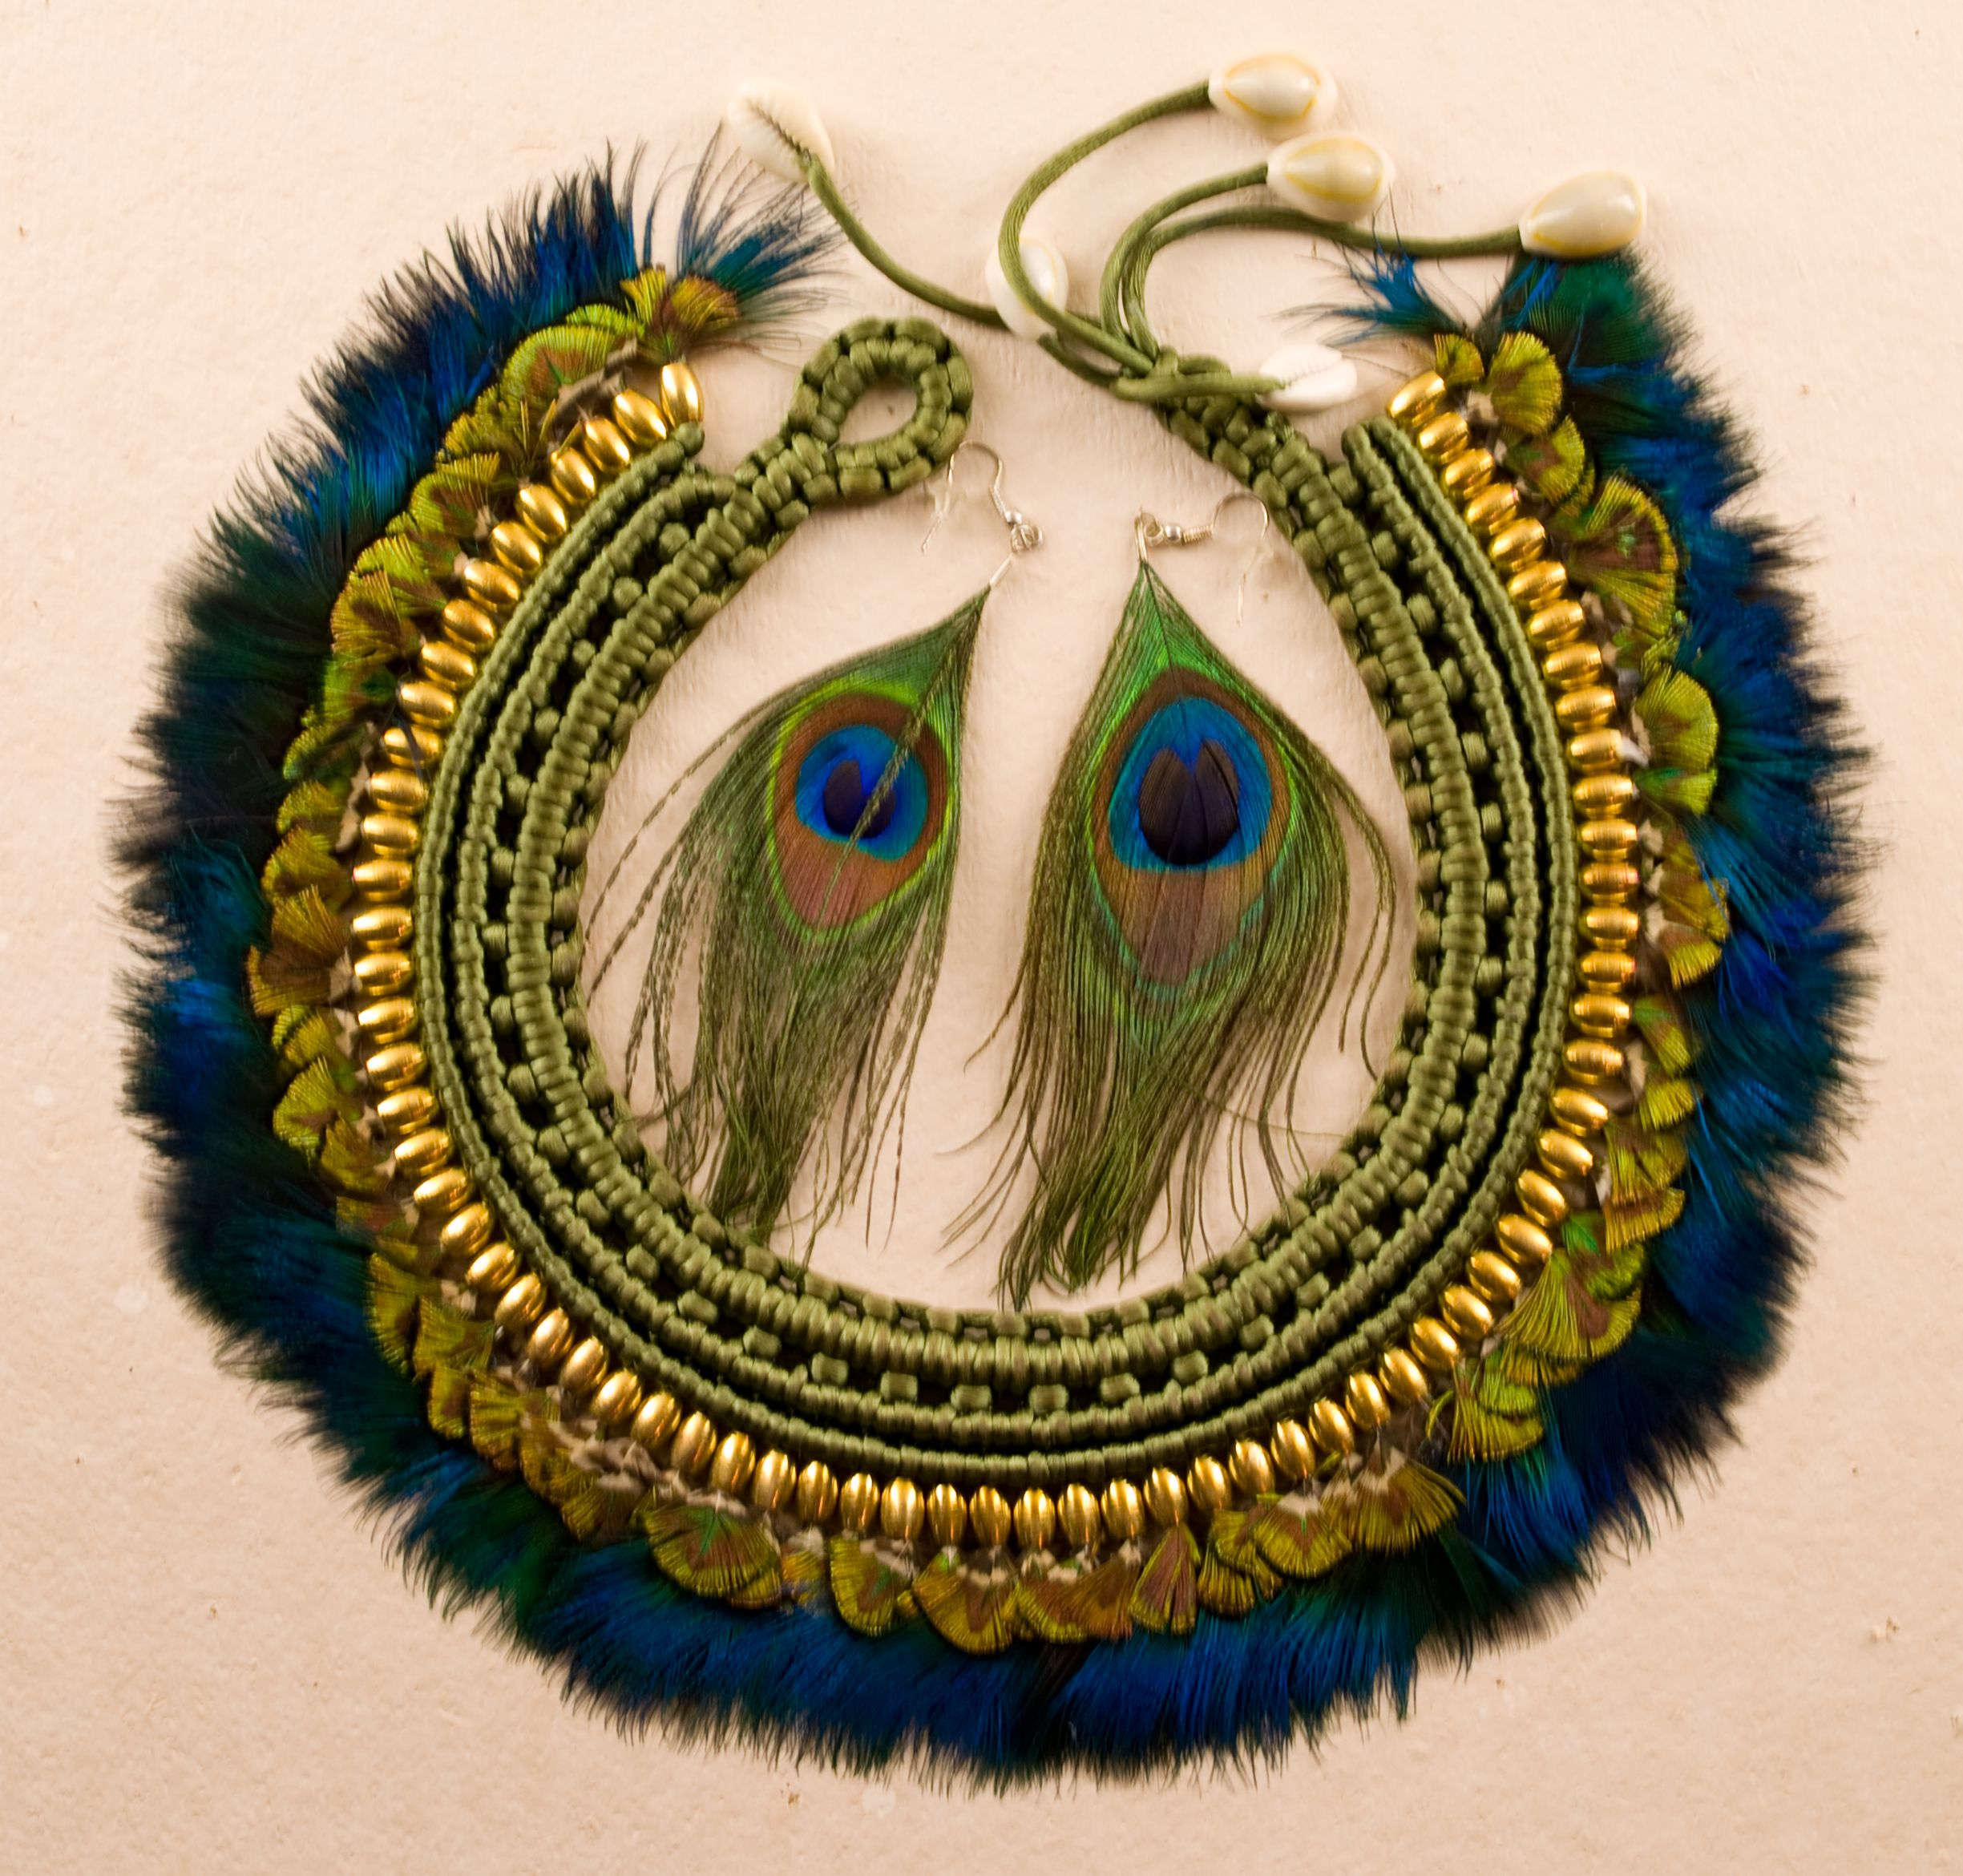 peacock s view necklace image feather a larger